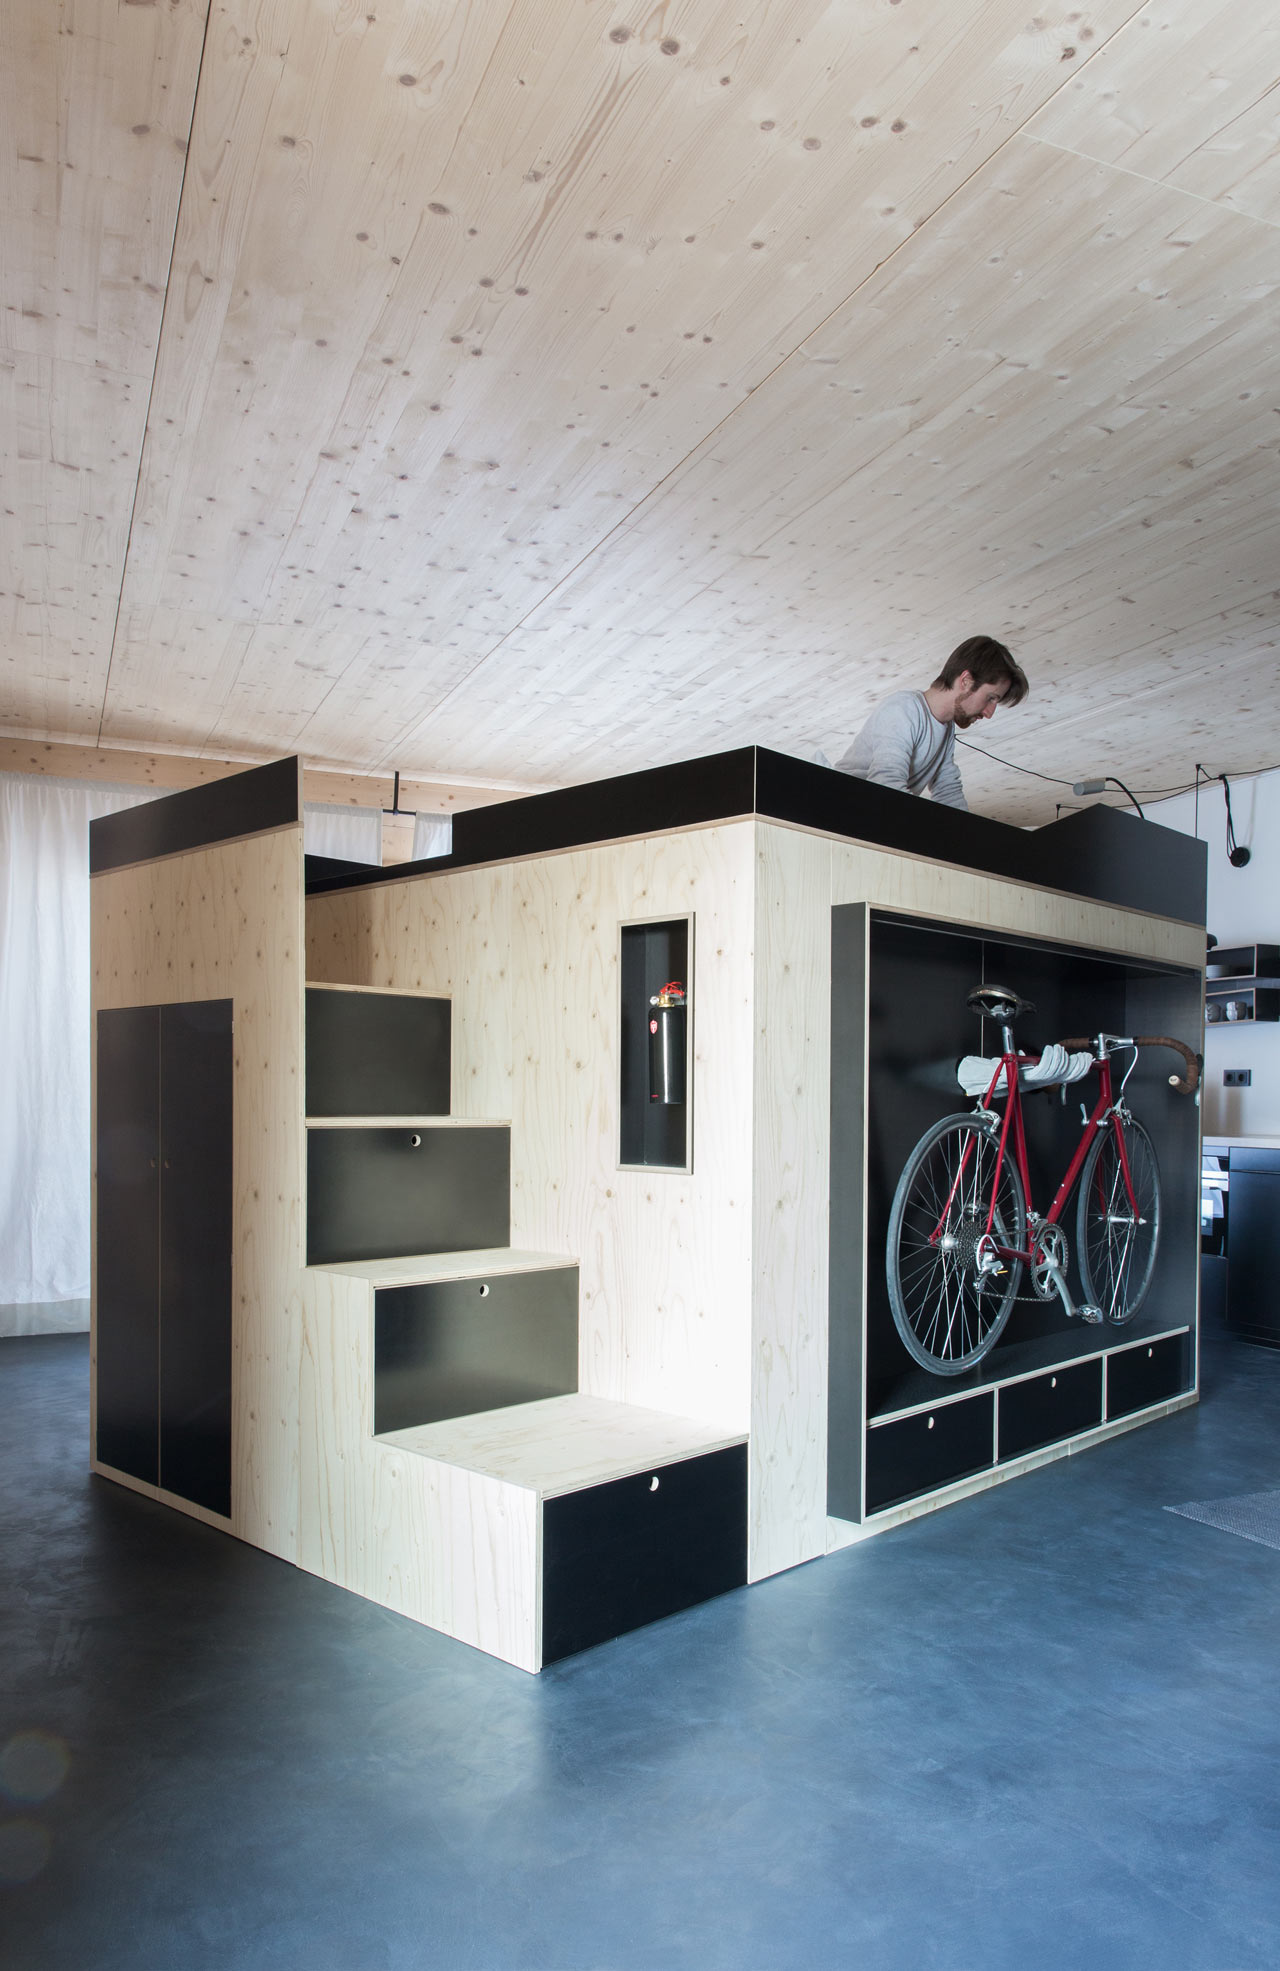 A Cube Like Room Within a Room Design Milk